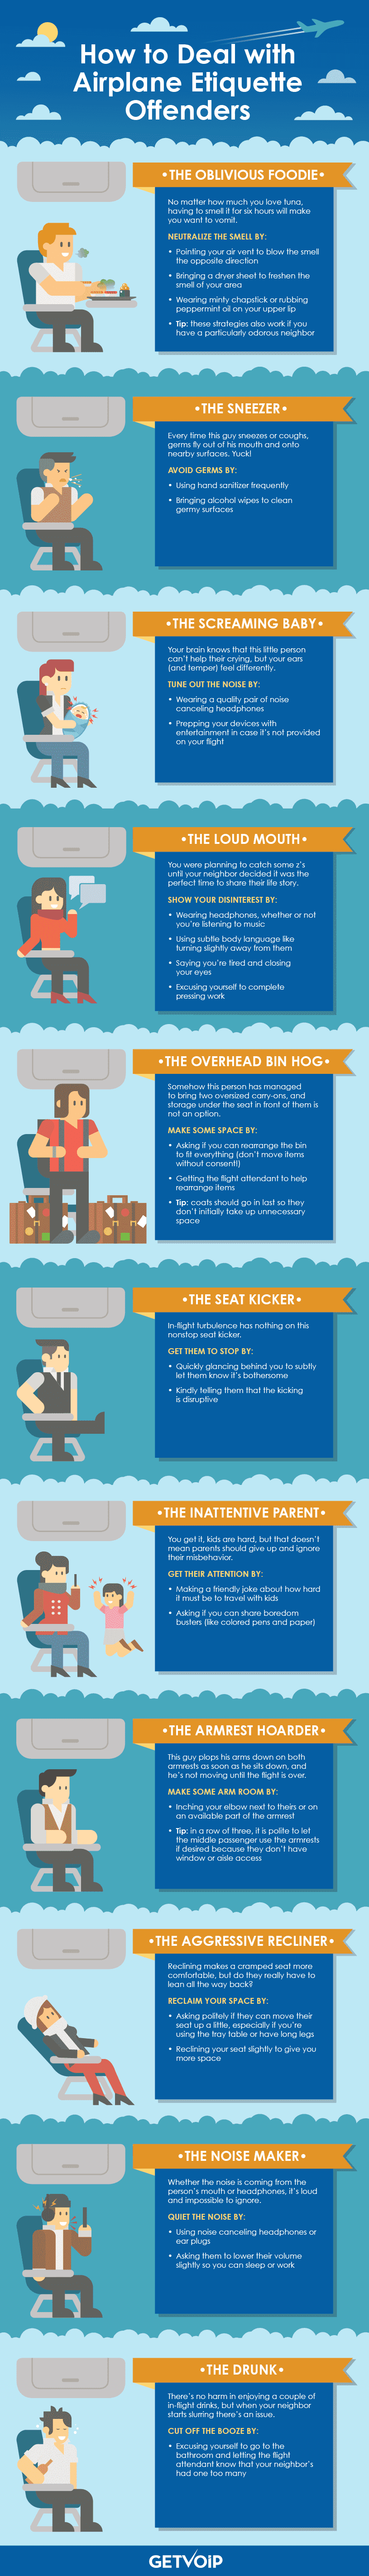 How to Deal with Airplane Etiquette Offenders